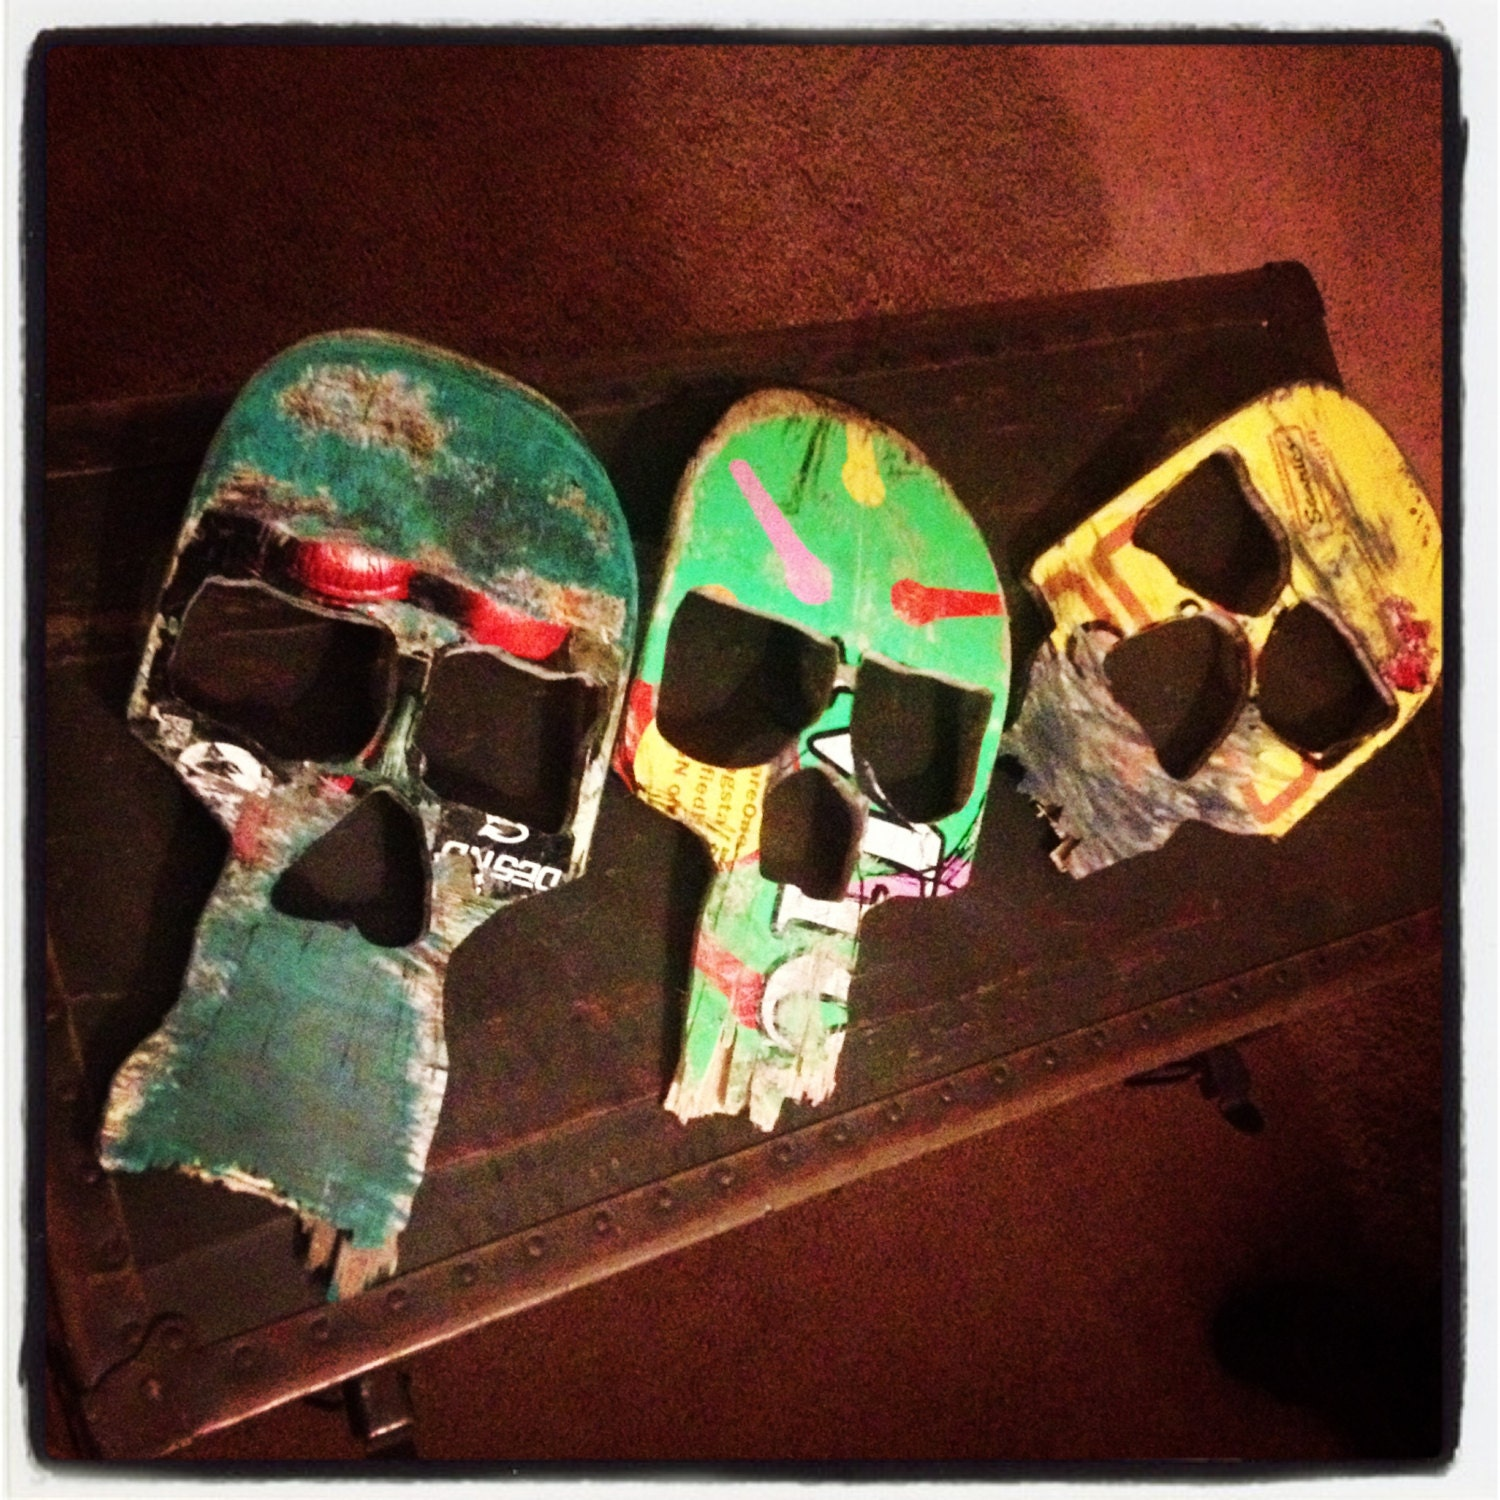 Skull Wall Art from Broken Skateboard Decks - WanderingStarLargo